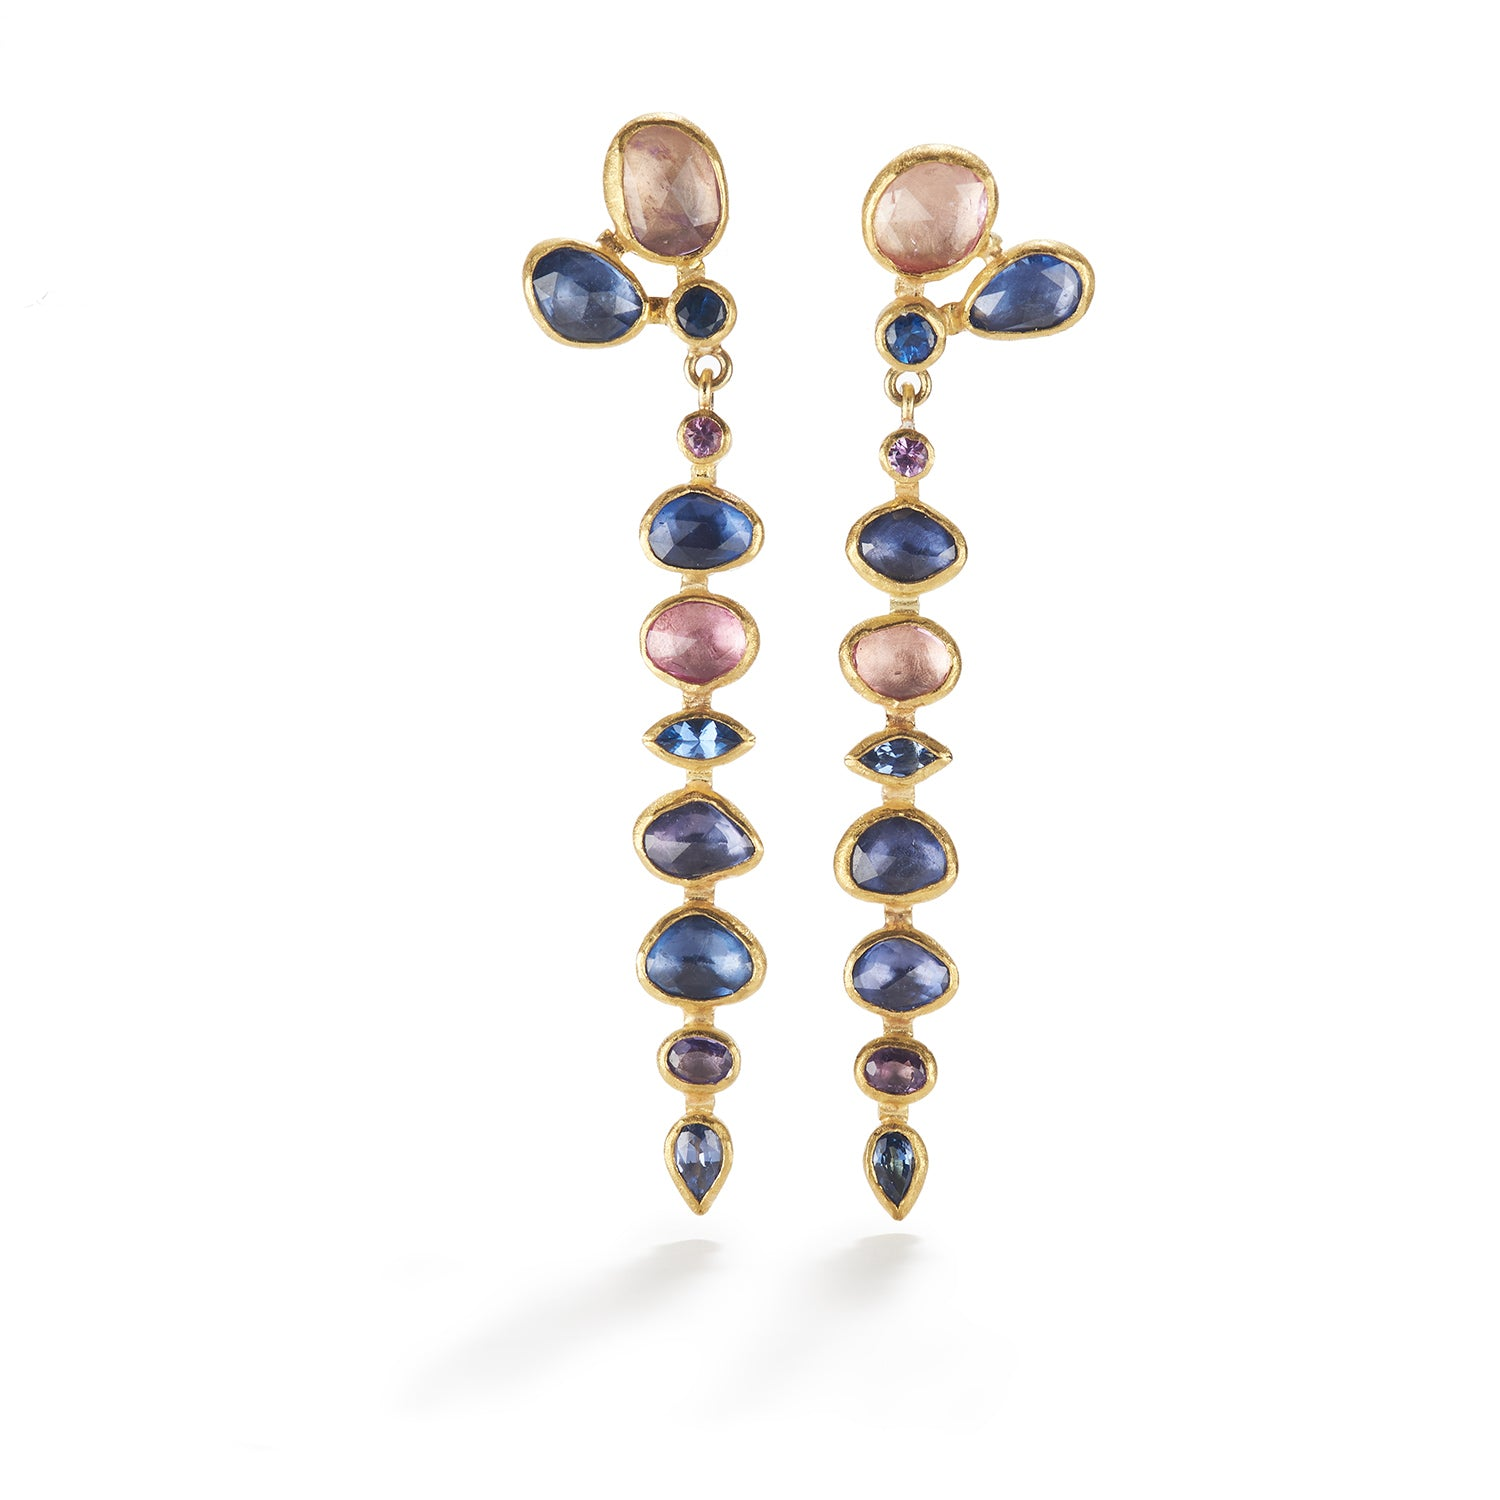 Rose cut, Faceted and Rough Sapphire Dangles